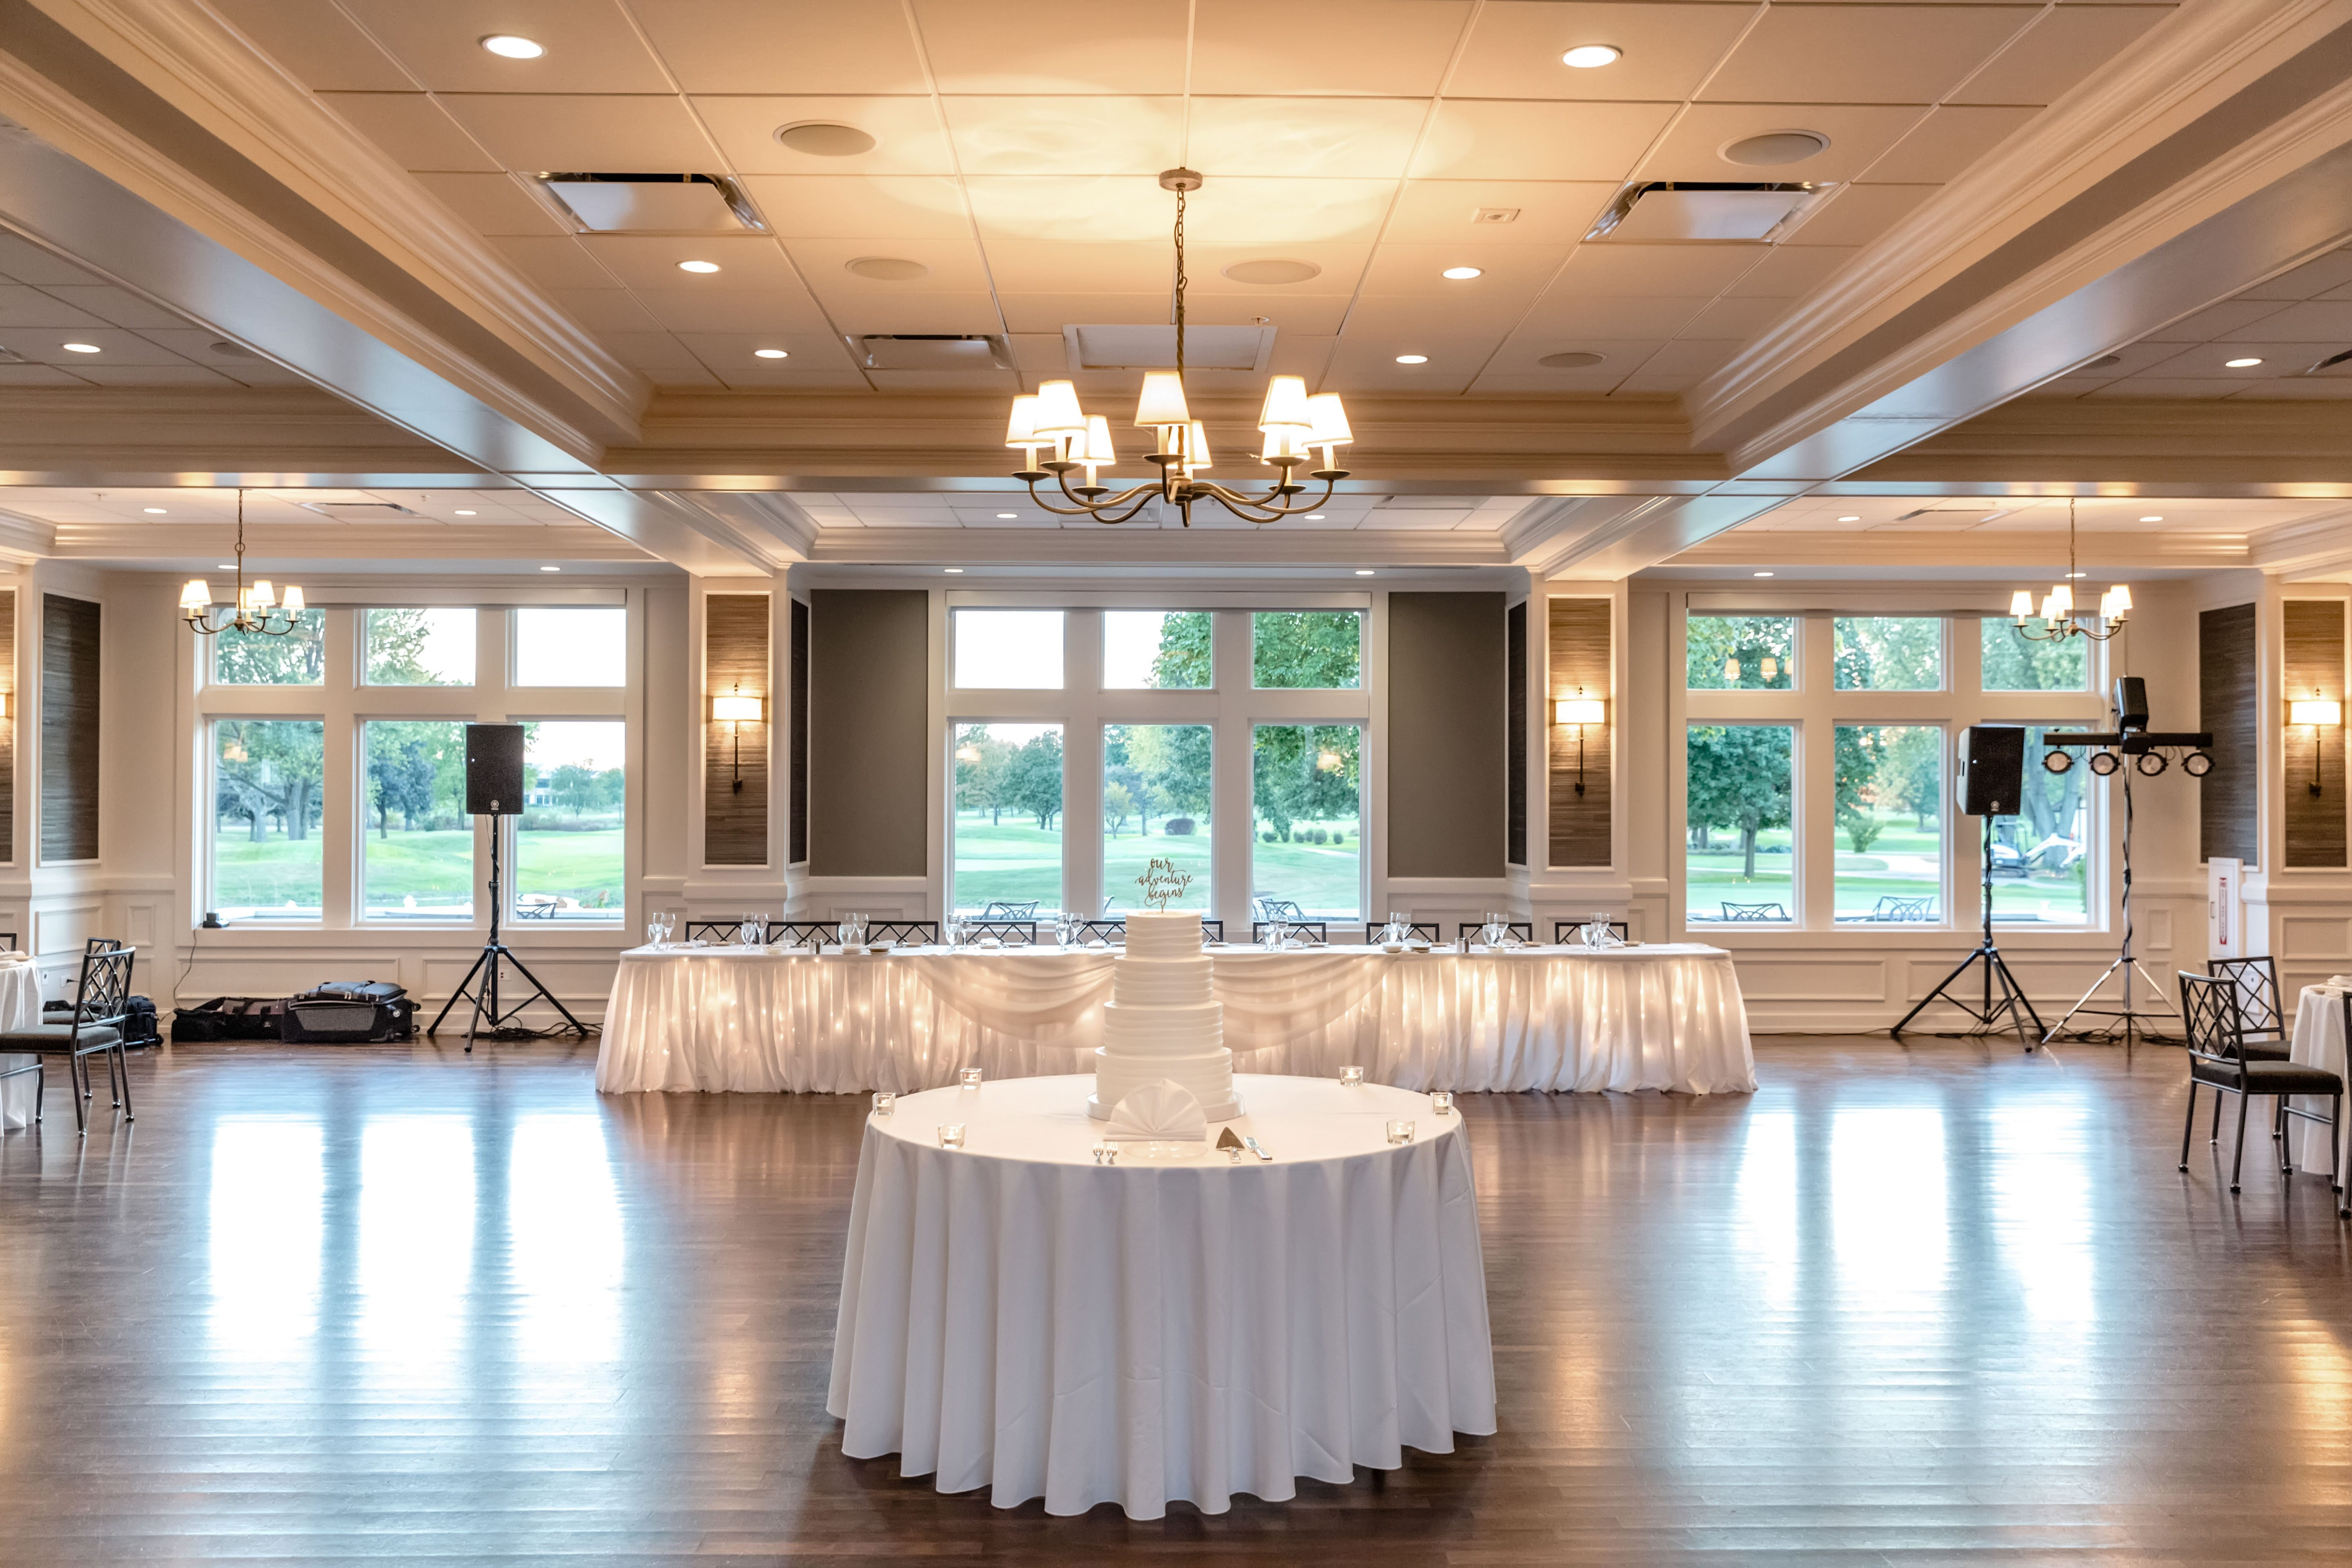 Chevy Chase Country Club 1525883372 449073012 The